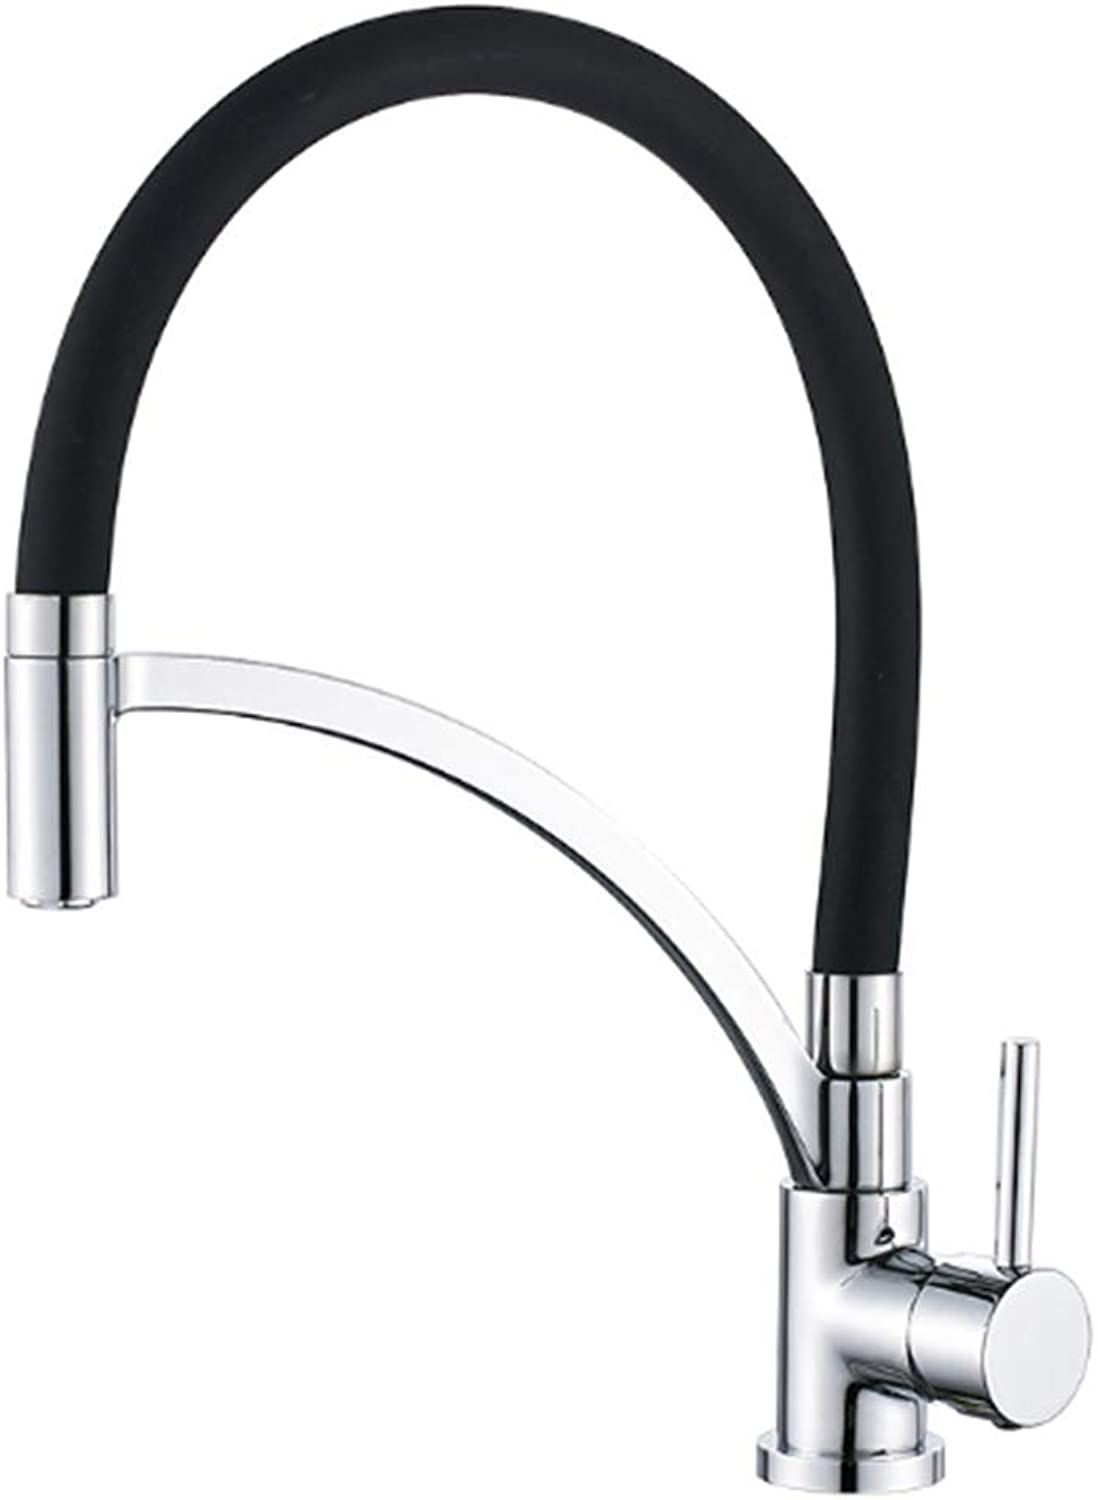 Commercial Lead Free Pull Out Kitchen Sink Faucet 360° redation Chrome Plating Single Handle Arc Water Filter Purifier Faucets